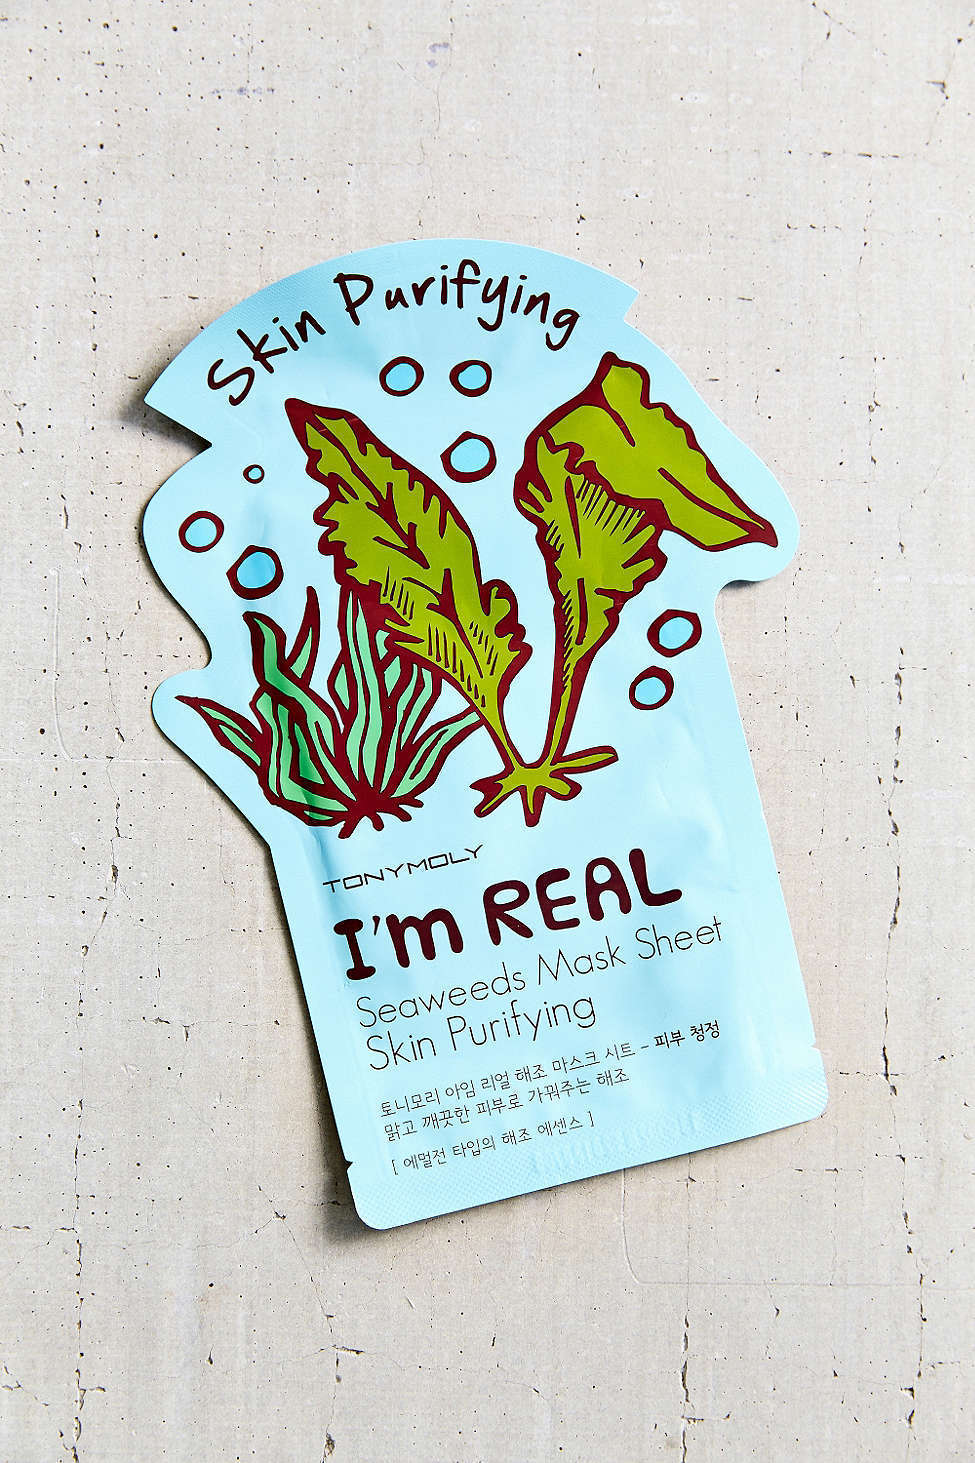 TonyMoly  I'm Real Mask Sheet  via Urban Outfitters   ($3)